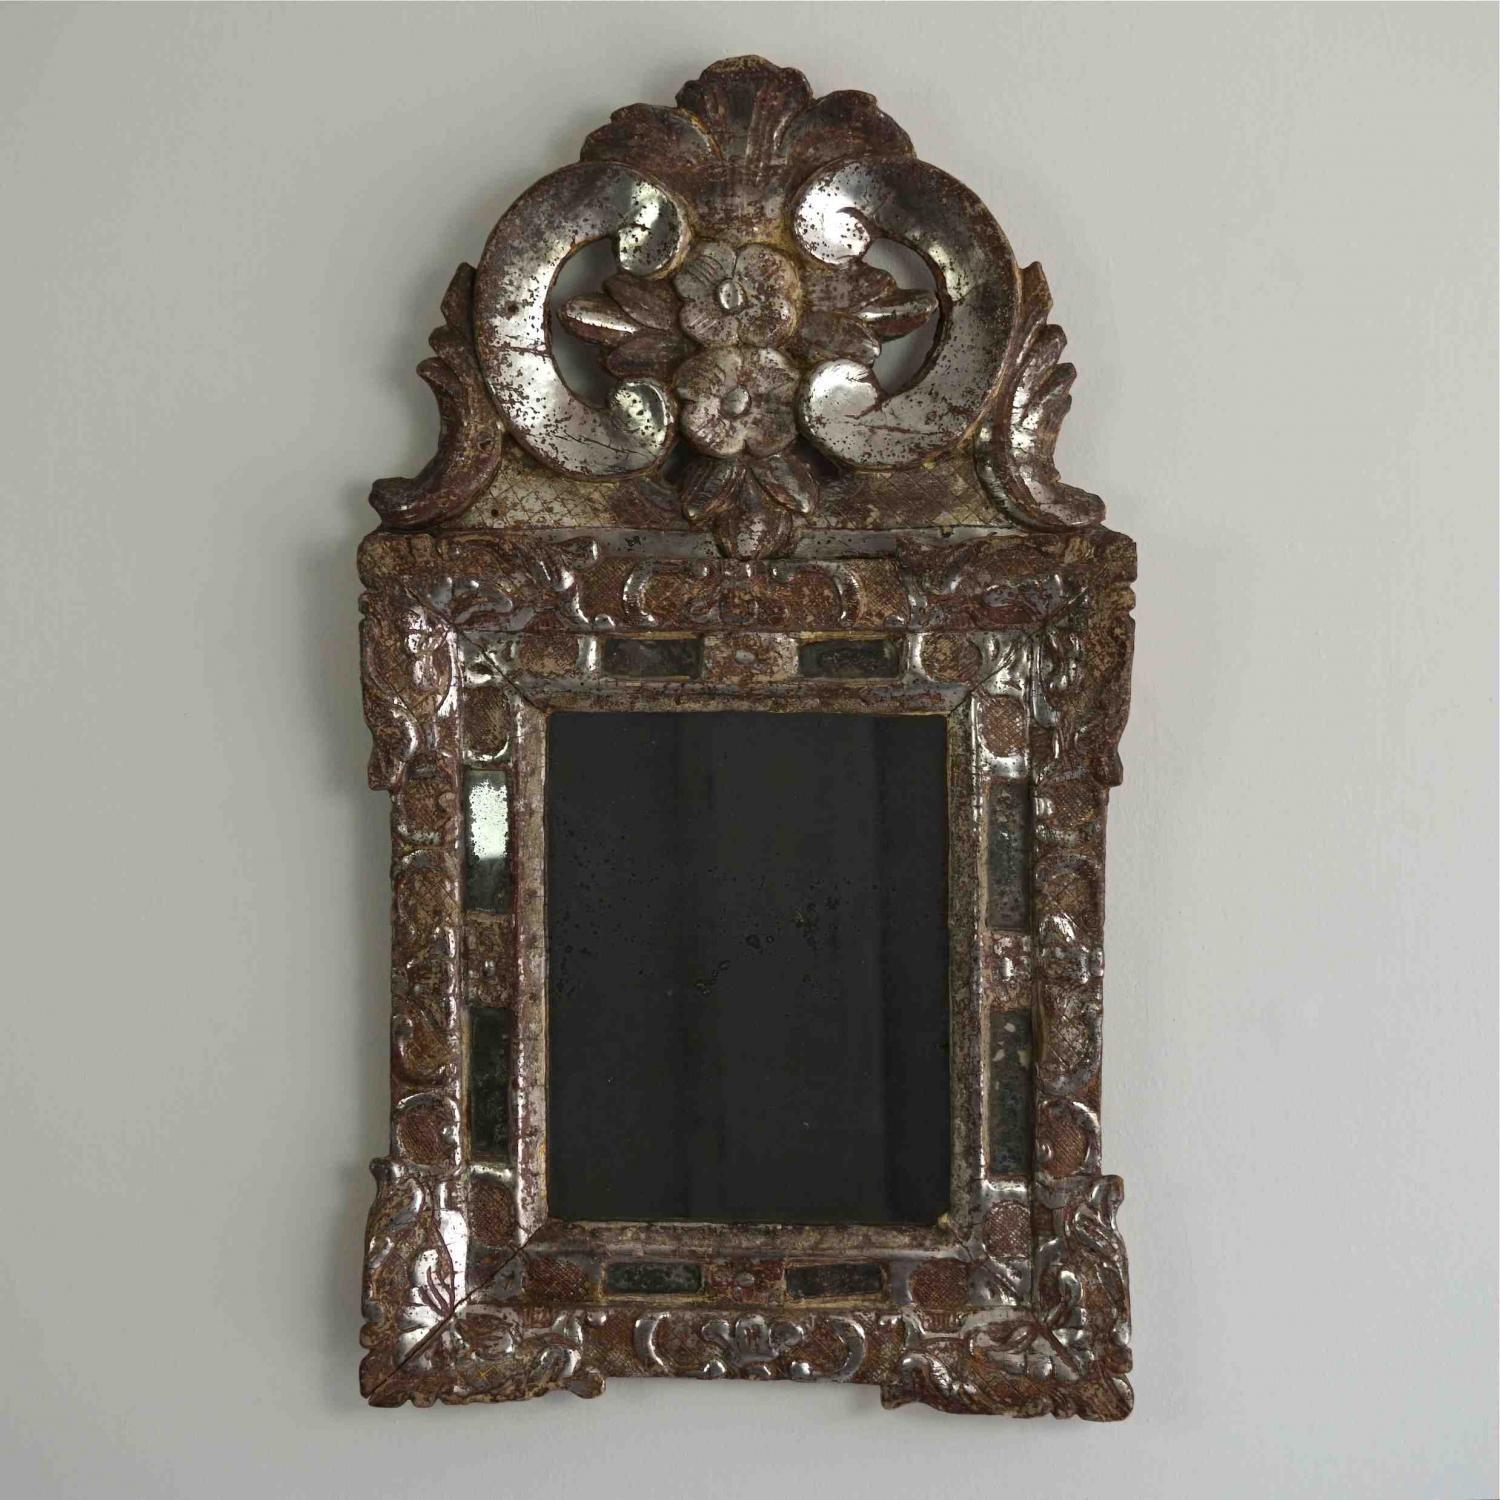 EXTRAORDINARY SILVER LOUIS XIV MIRROR